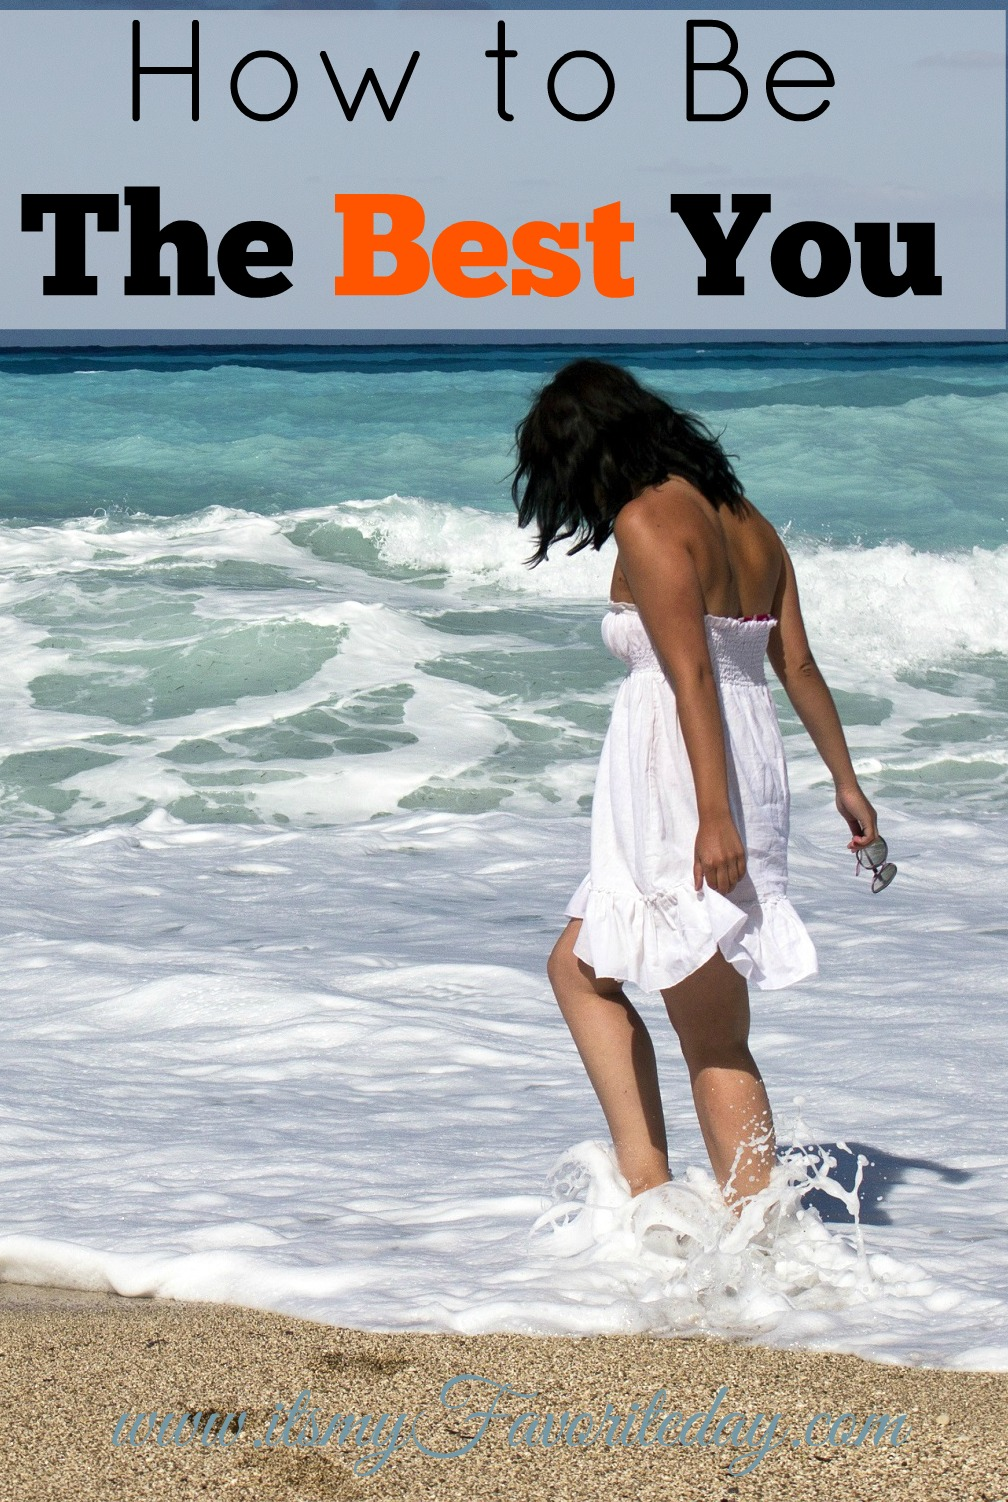 You want to be the best you, and that makes you amazing. So what does being your best self look like? Click to read 5 keys to being your best you! No time, make sure to repin! Live with intention!